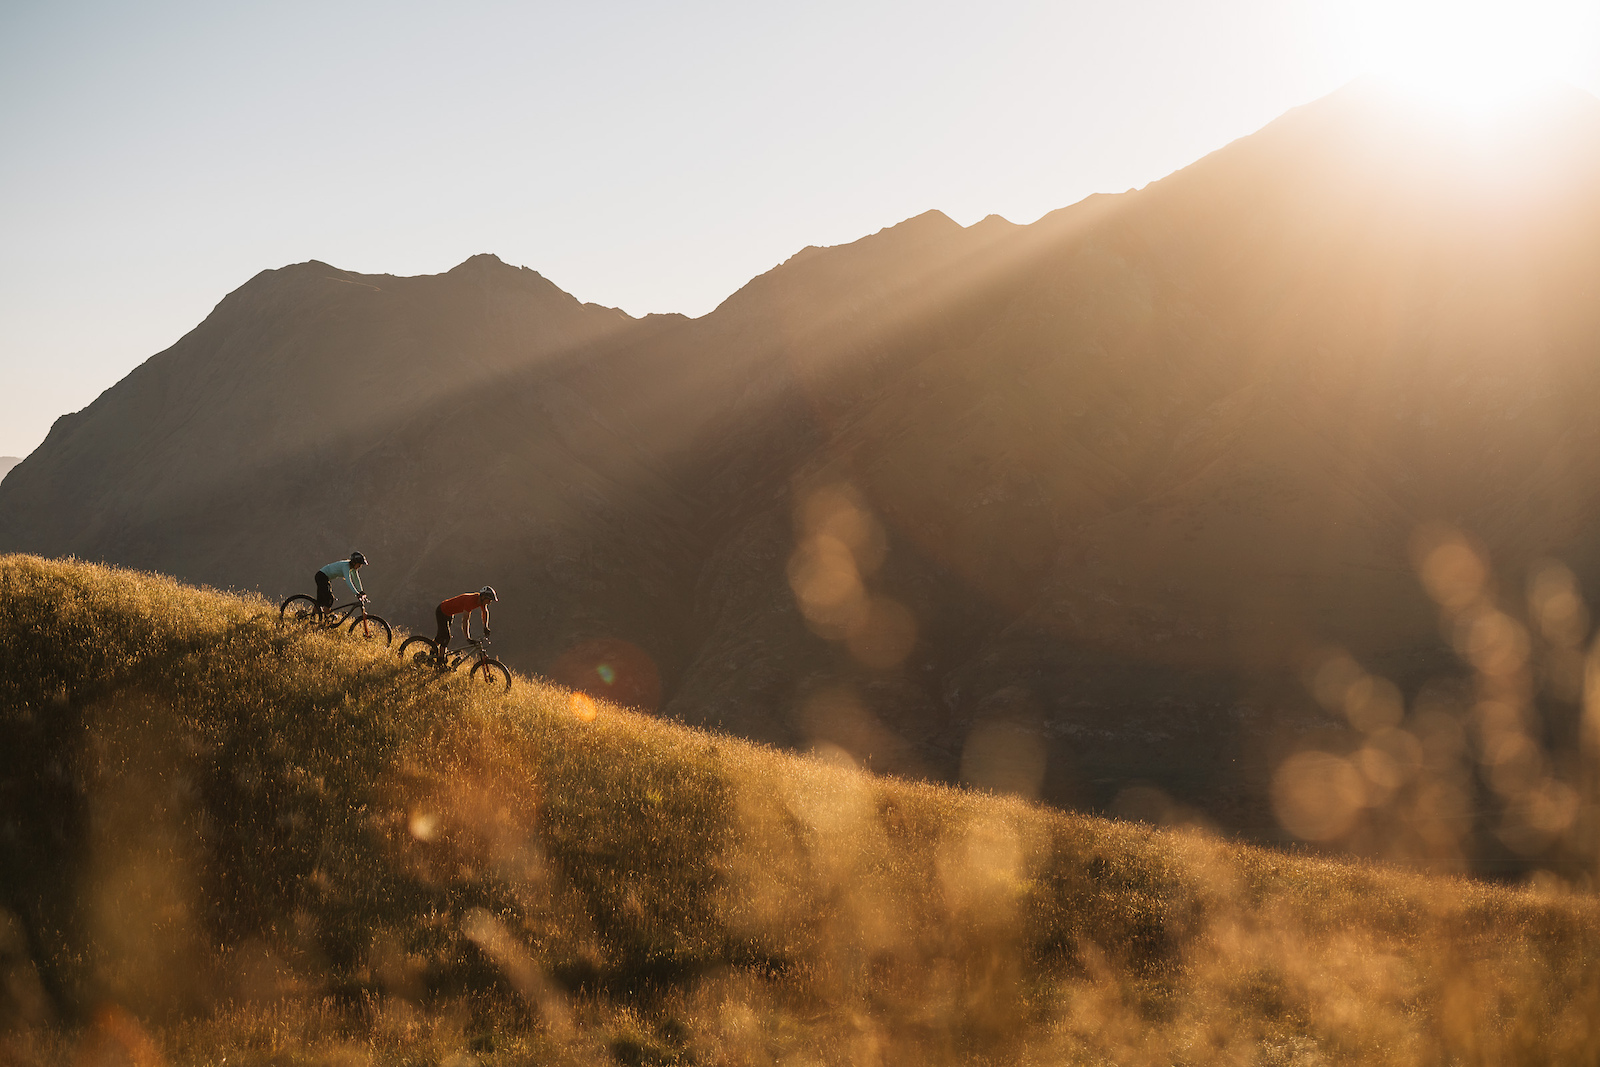 Cruising down the ridgeline as the sun comes up over the park.